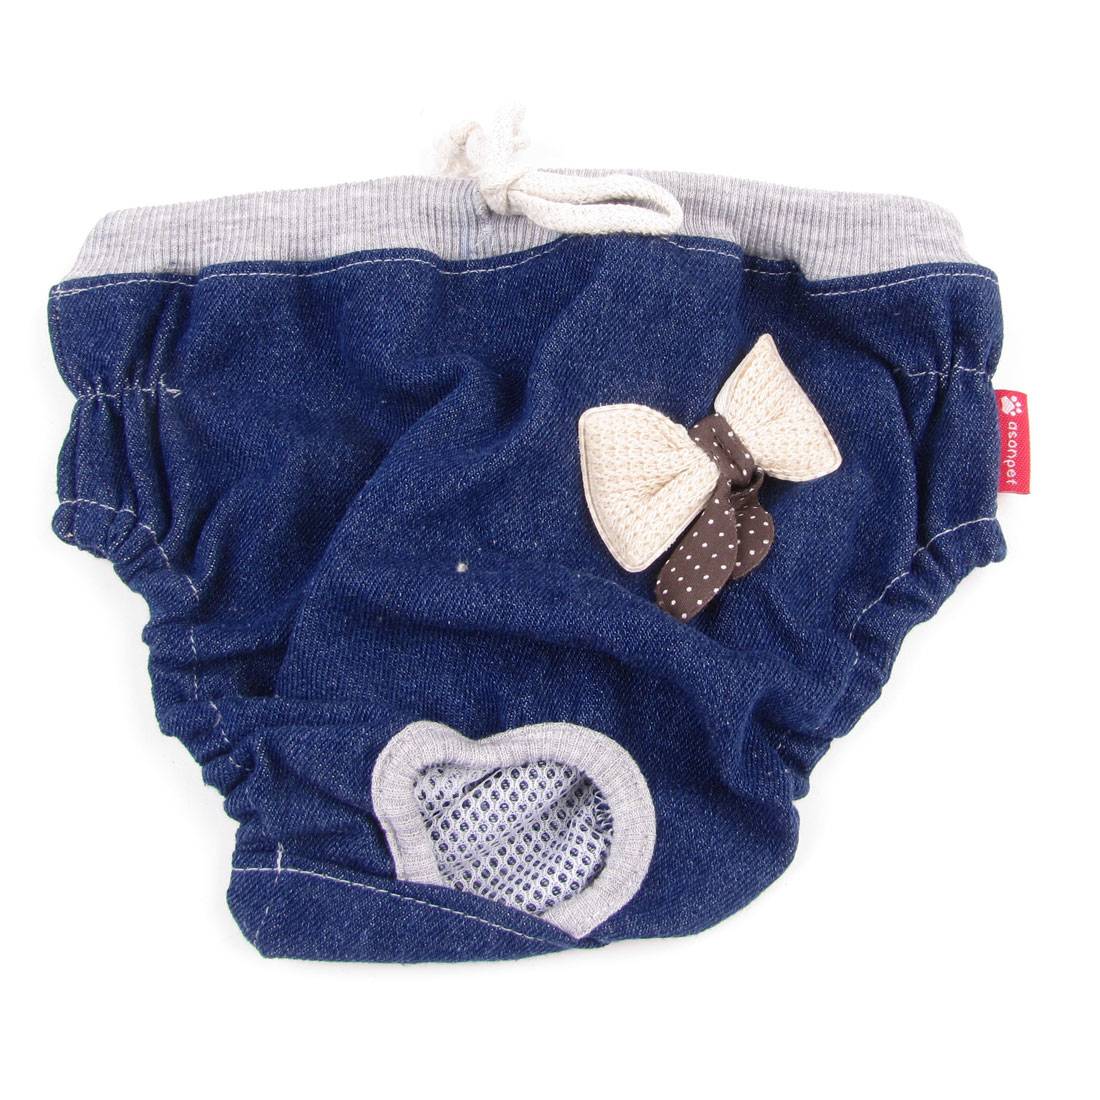 Bowknot Decor Elastic Waist Underwear Diaper Pants Blue Size M for Pet Dog